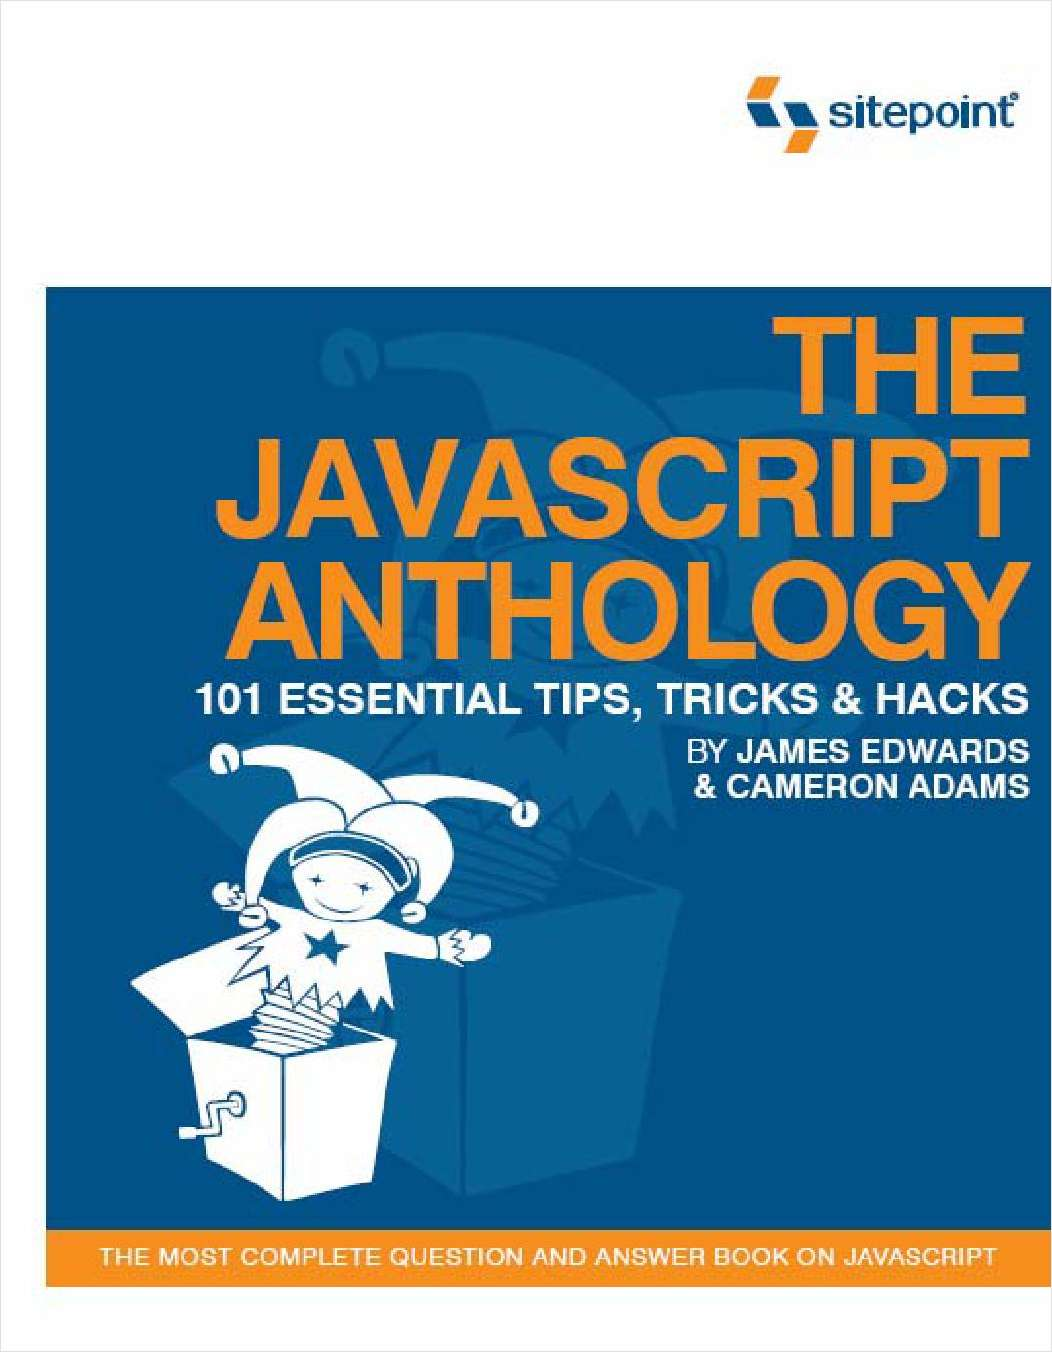 The JavaScript Anthology: 101 Essential Tips, Tricks & Hacks - Free 158 Page Preview